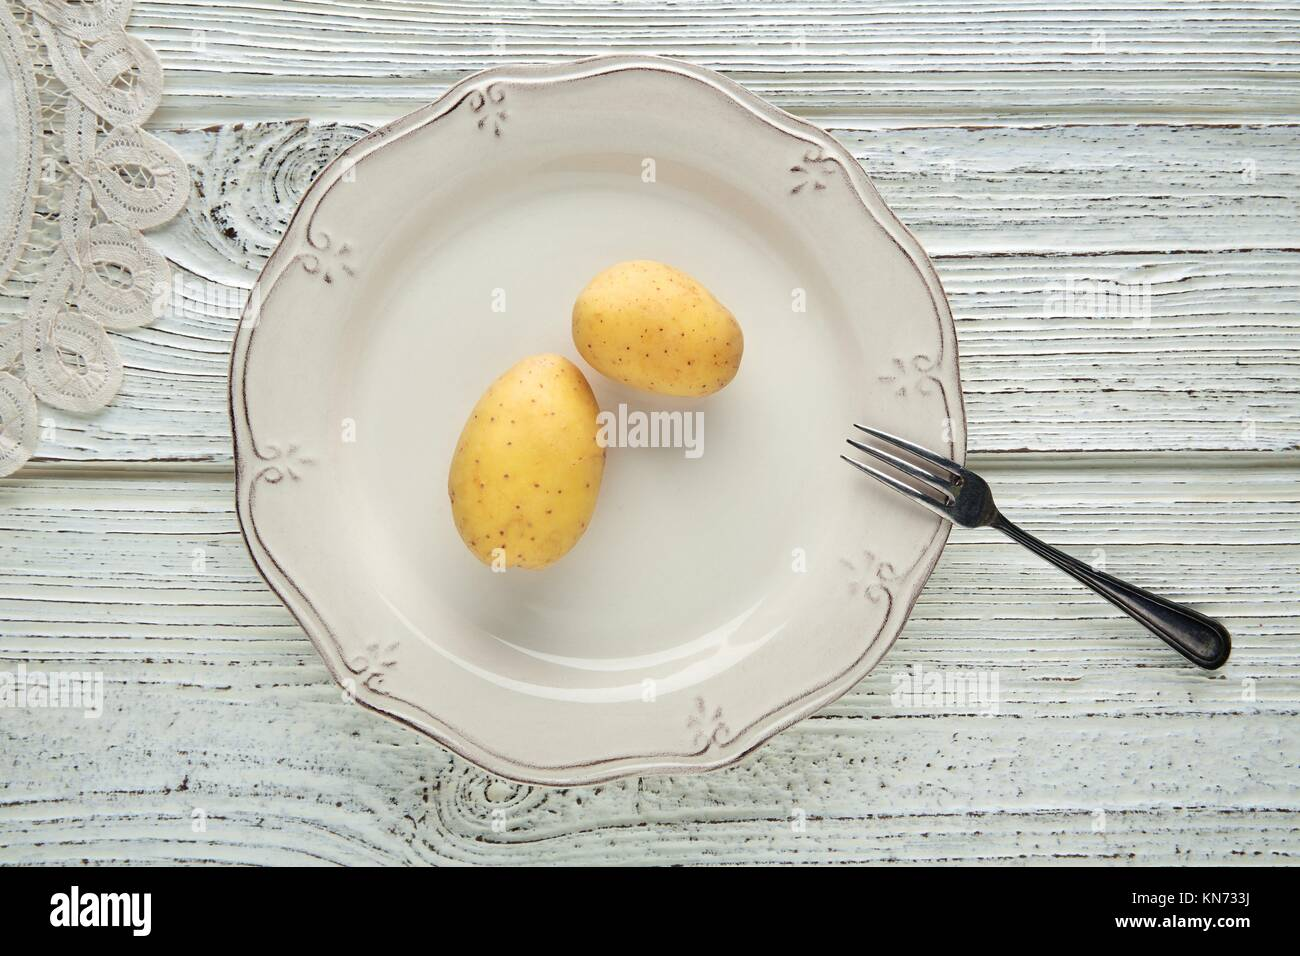 potatoes in white plate minimalist concept of raw vegetarian food. - Stock Image